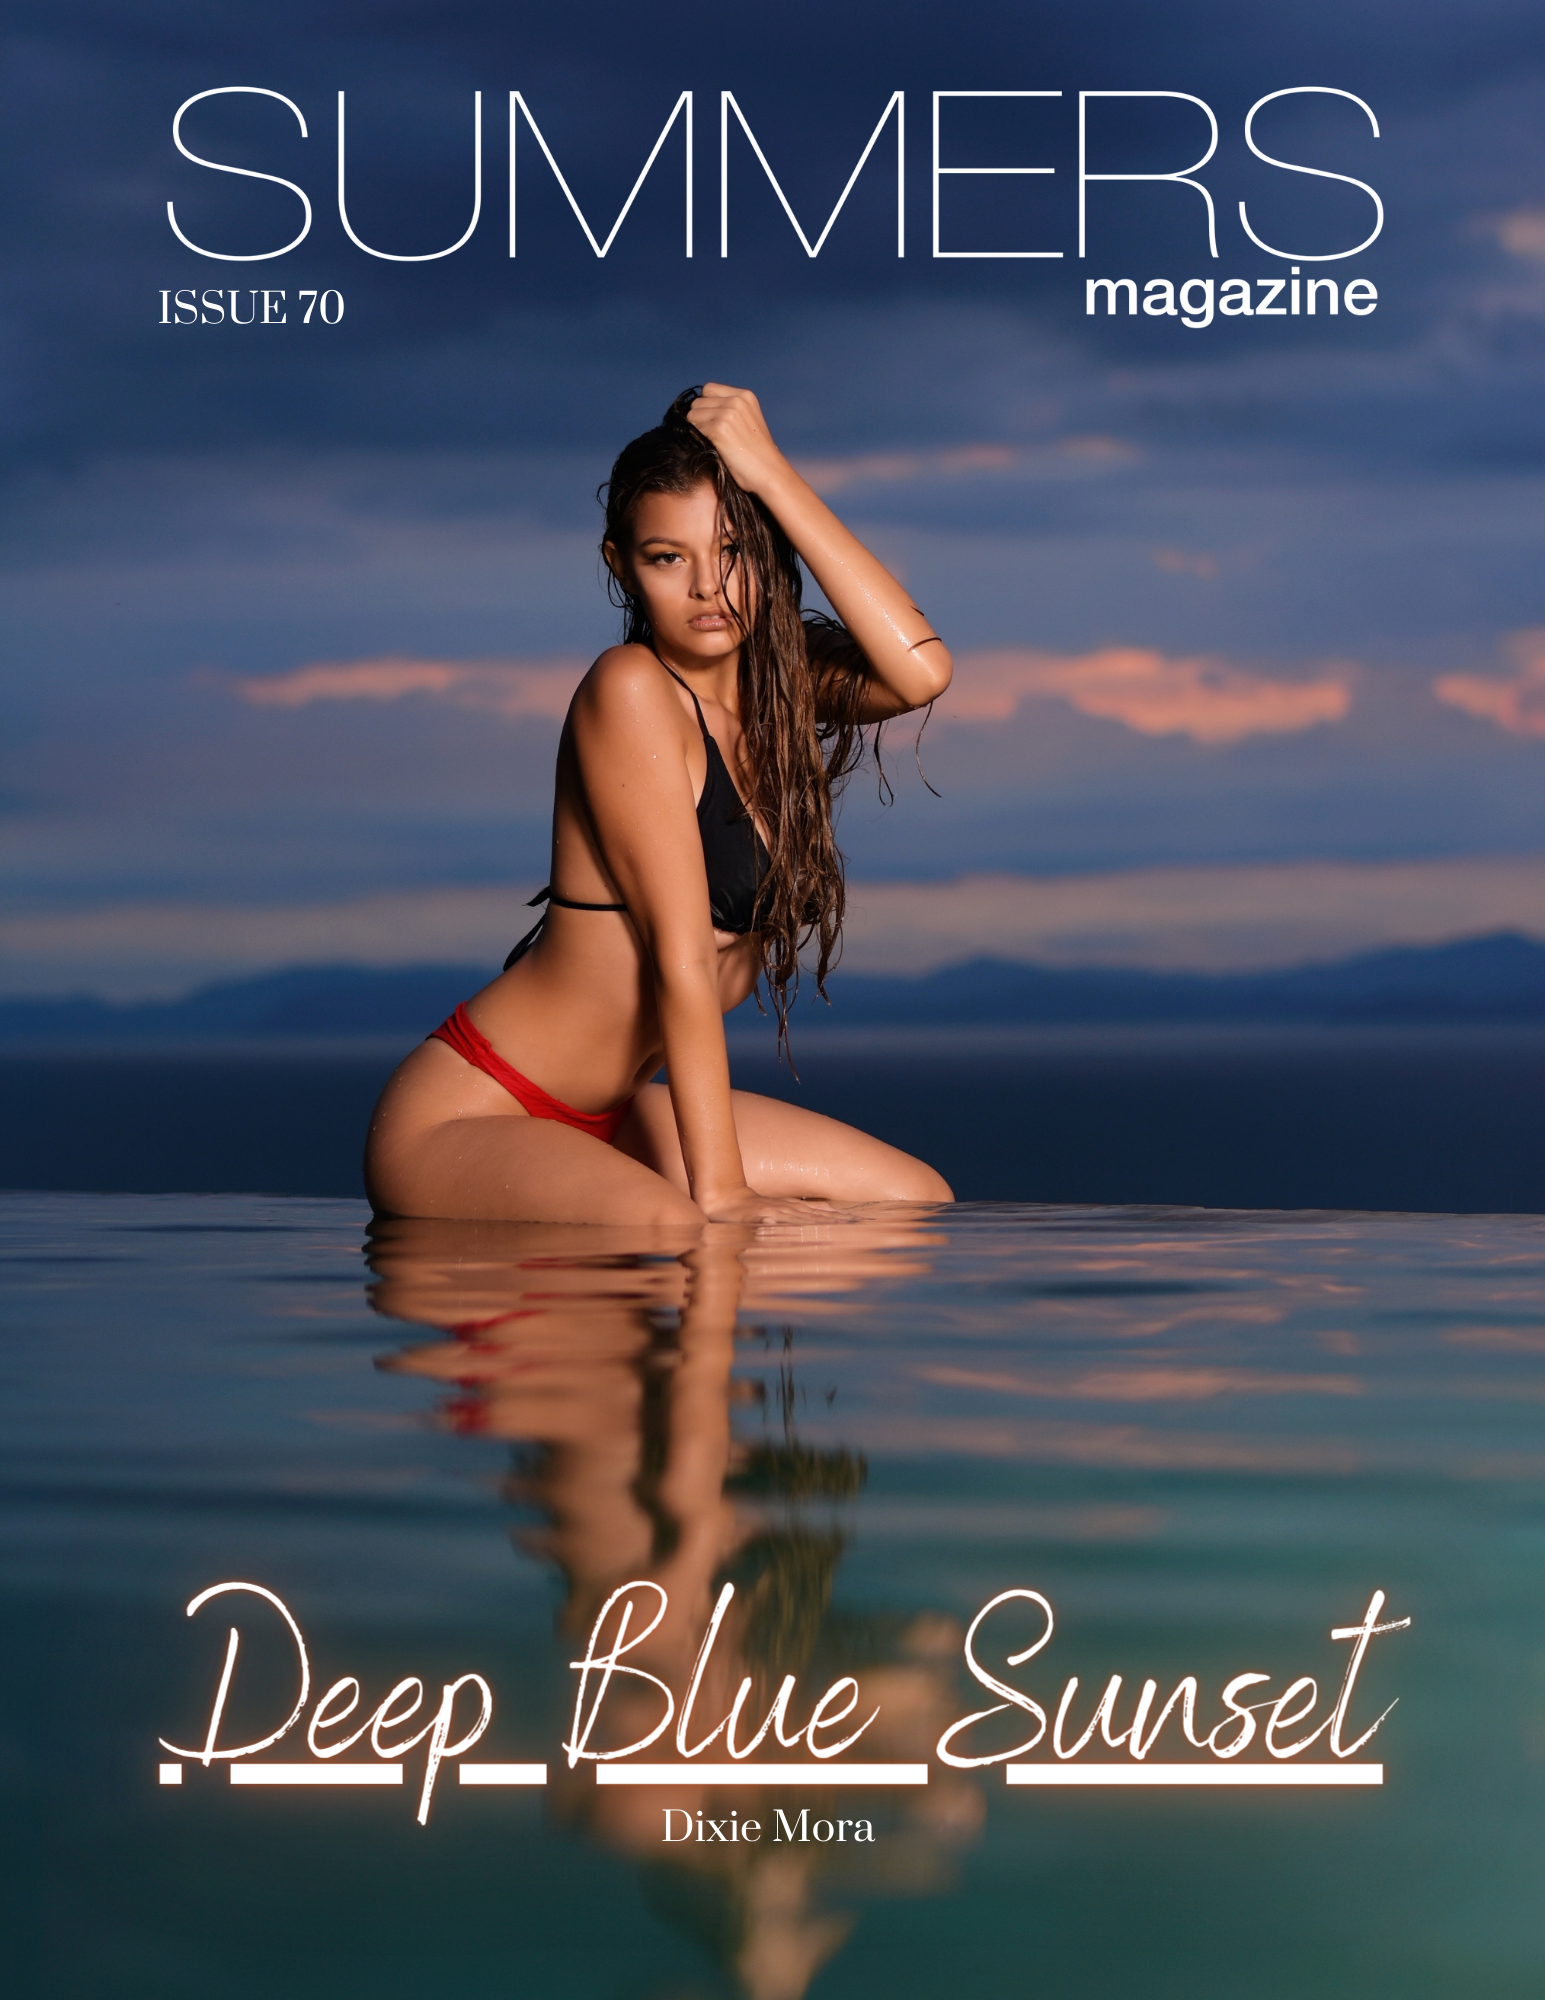 Summers Magazine Issue 70 Featuring Dixie Mora